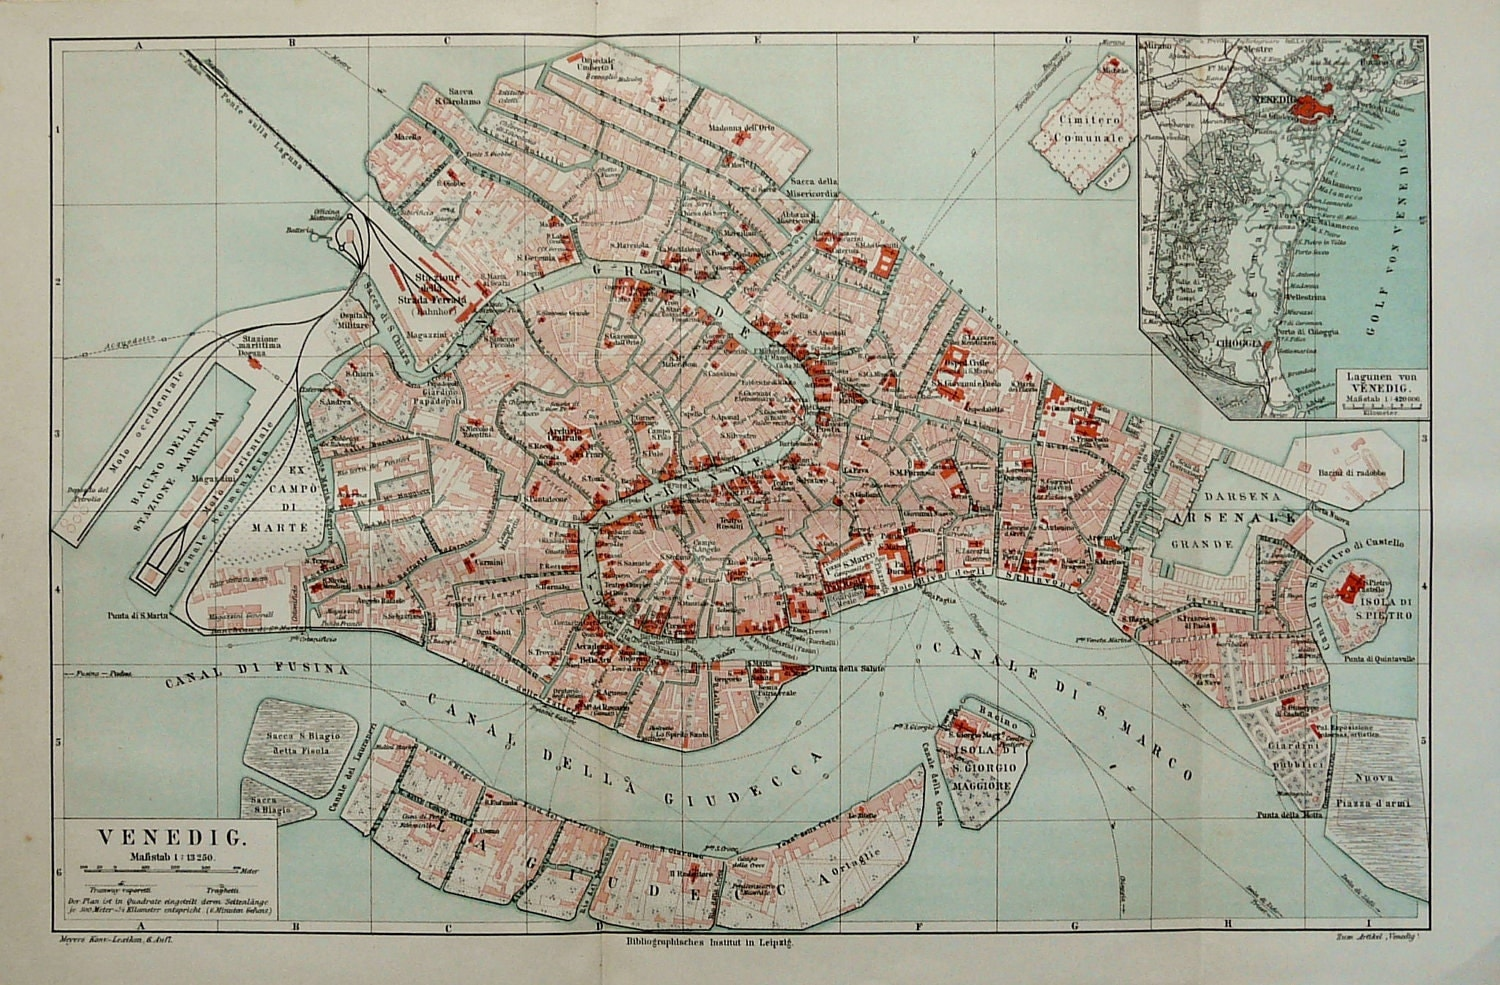 1897 Antique city map of VENICE ITALY.